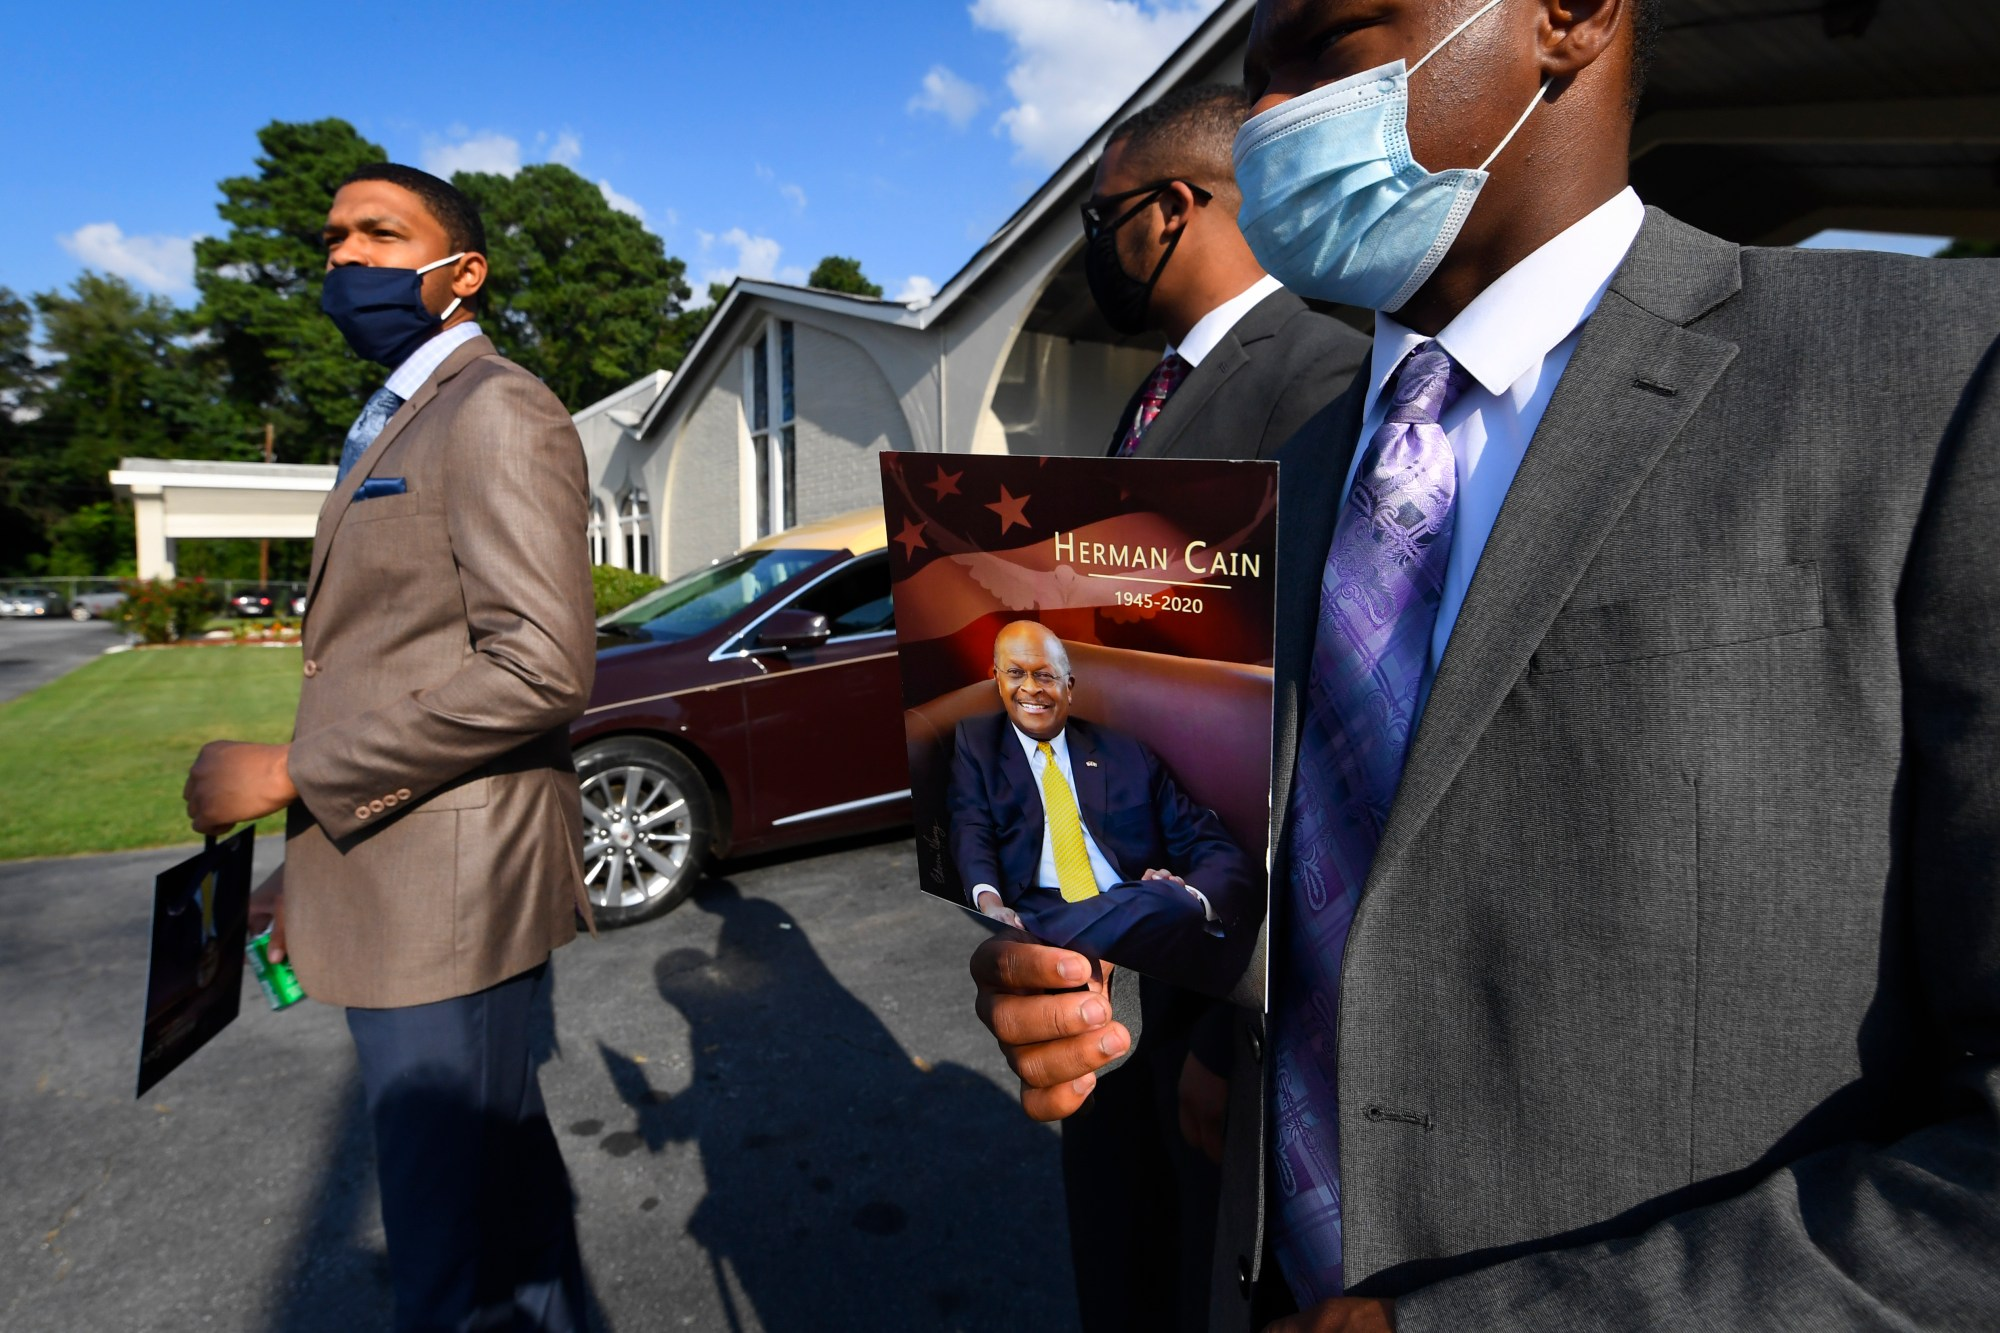 Attendees leave a public viewing for Herman Cain on Aug. 6, 2020, in Atlanta. (John Amis / Associated Press)